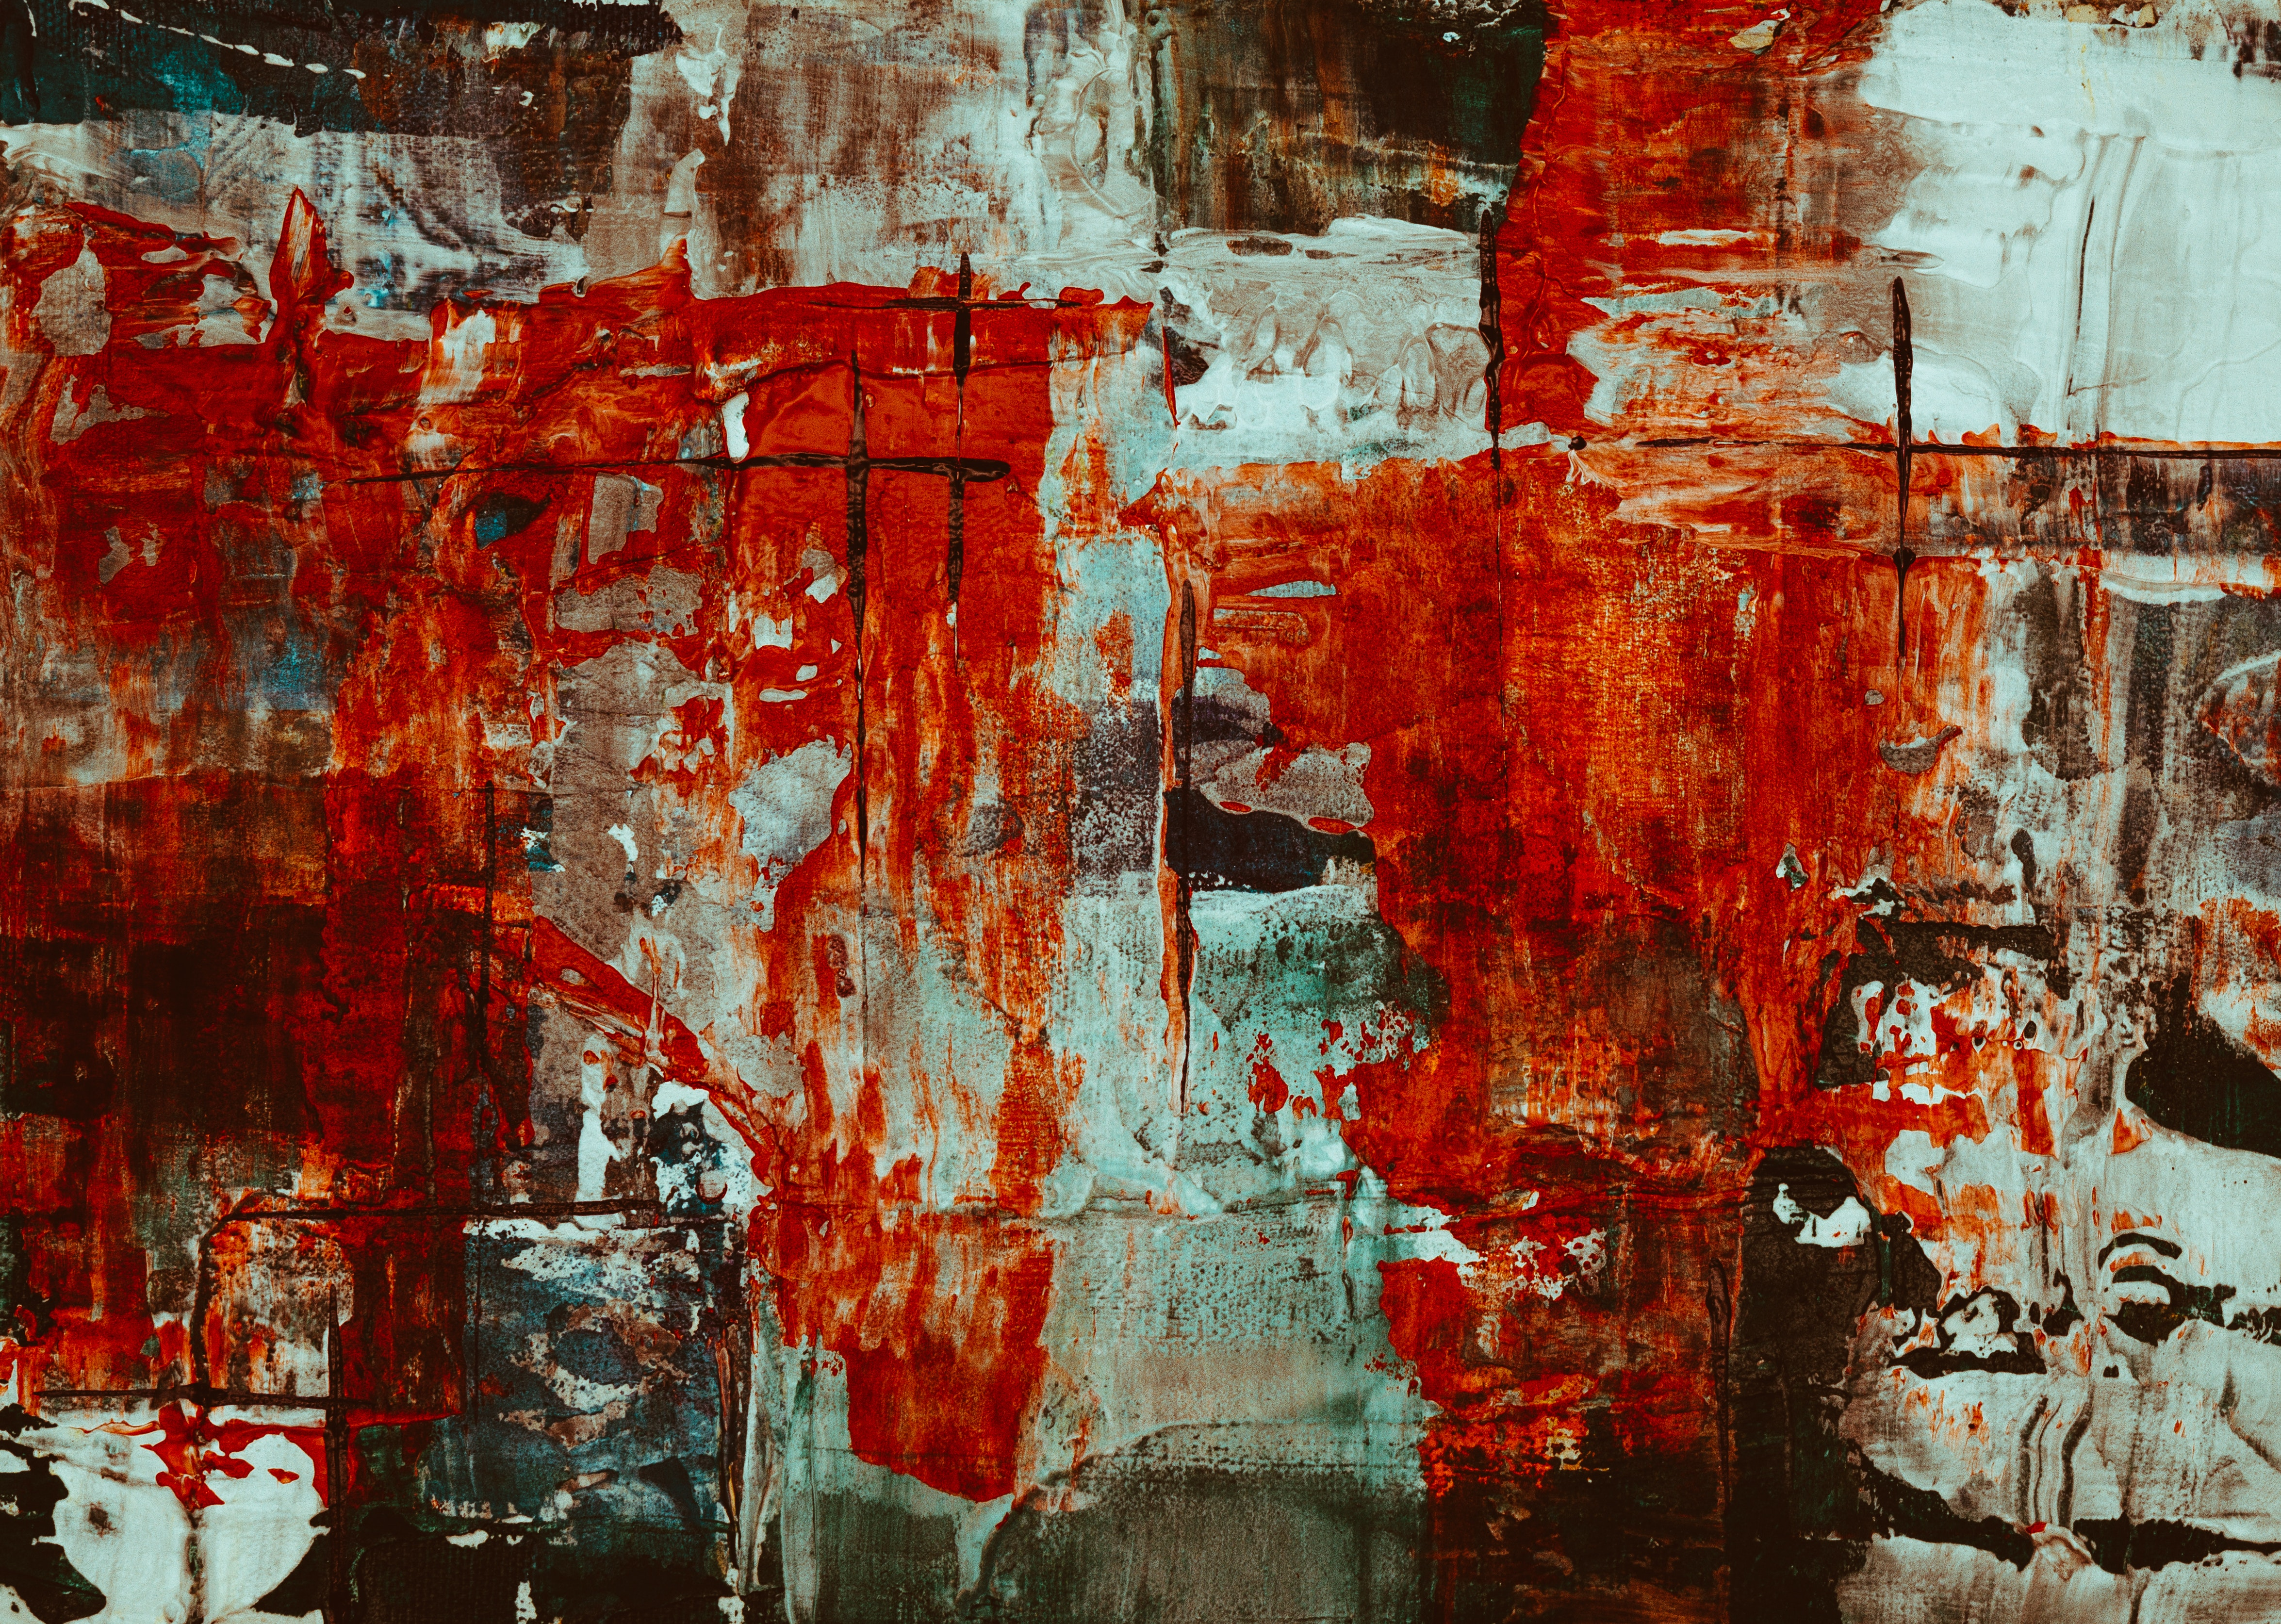 red-and-brown-paint-splatter-2030236